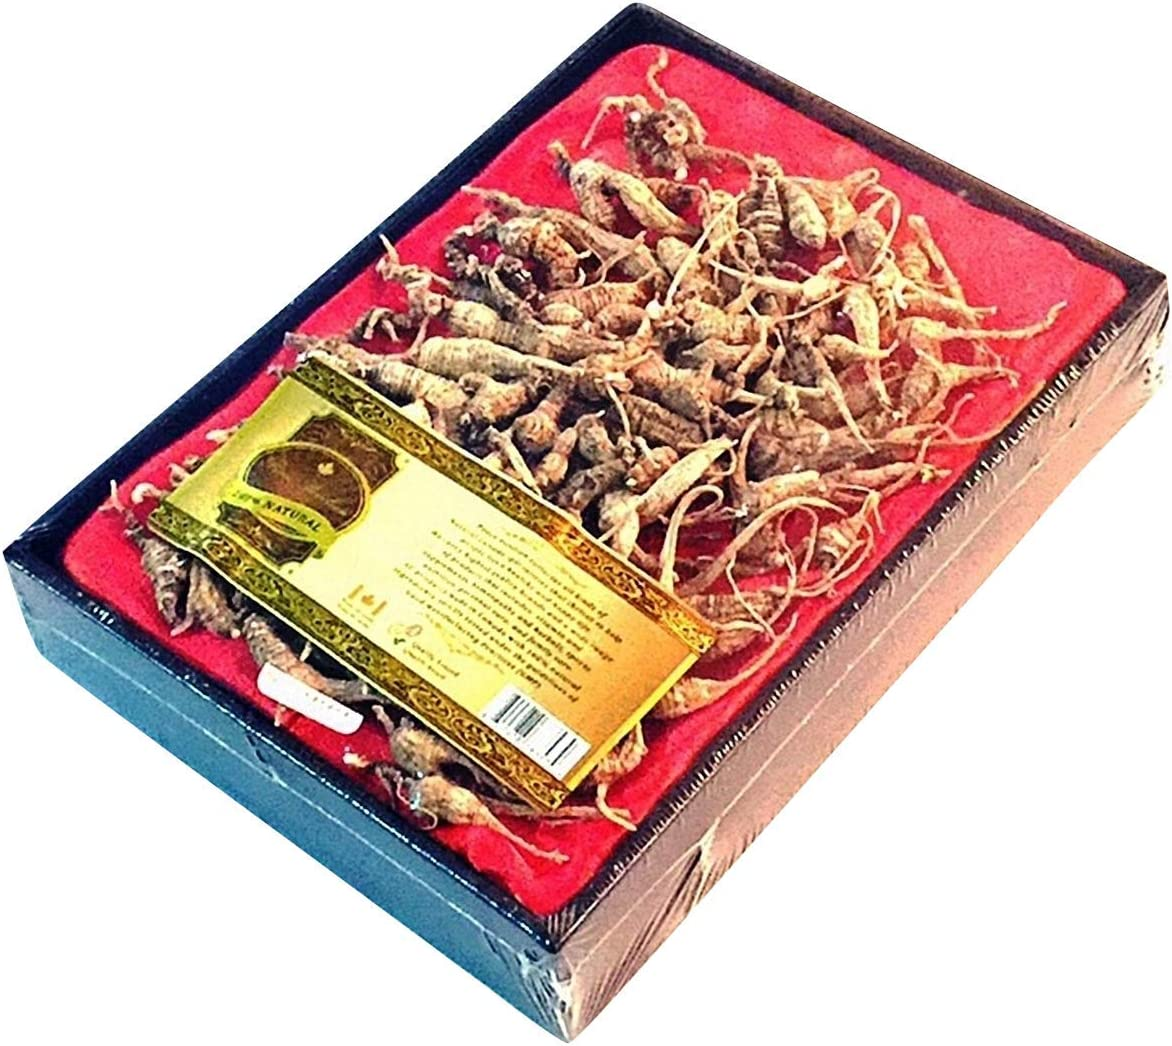 Peace Pavilion Over 20 Years Pure-Wild Ginseng 100g